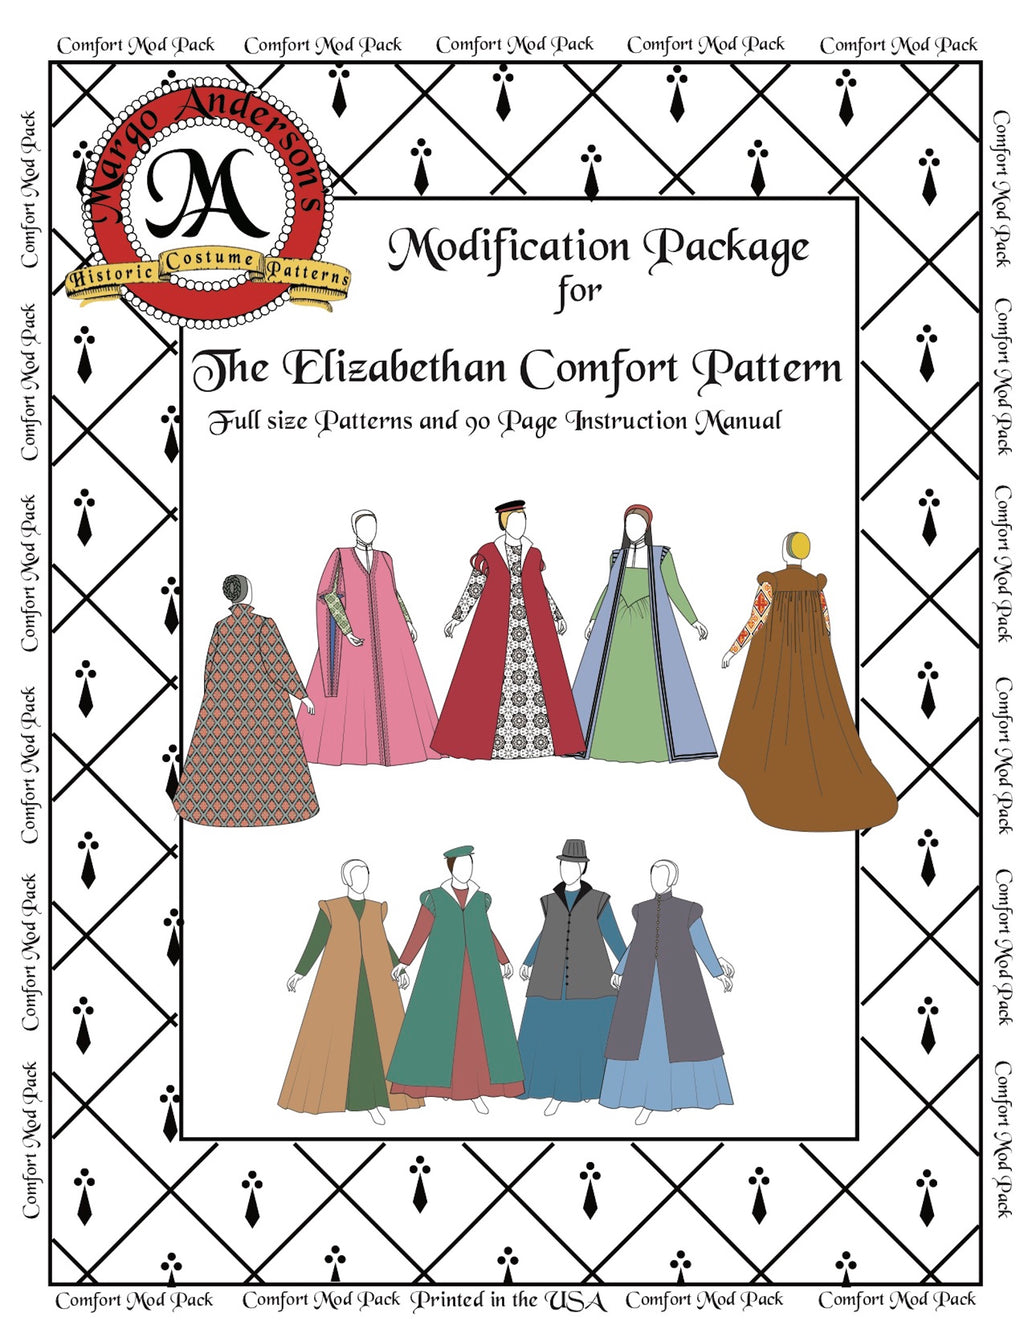 011 The Elizabethan Comfort Modification Package